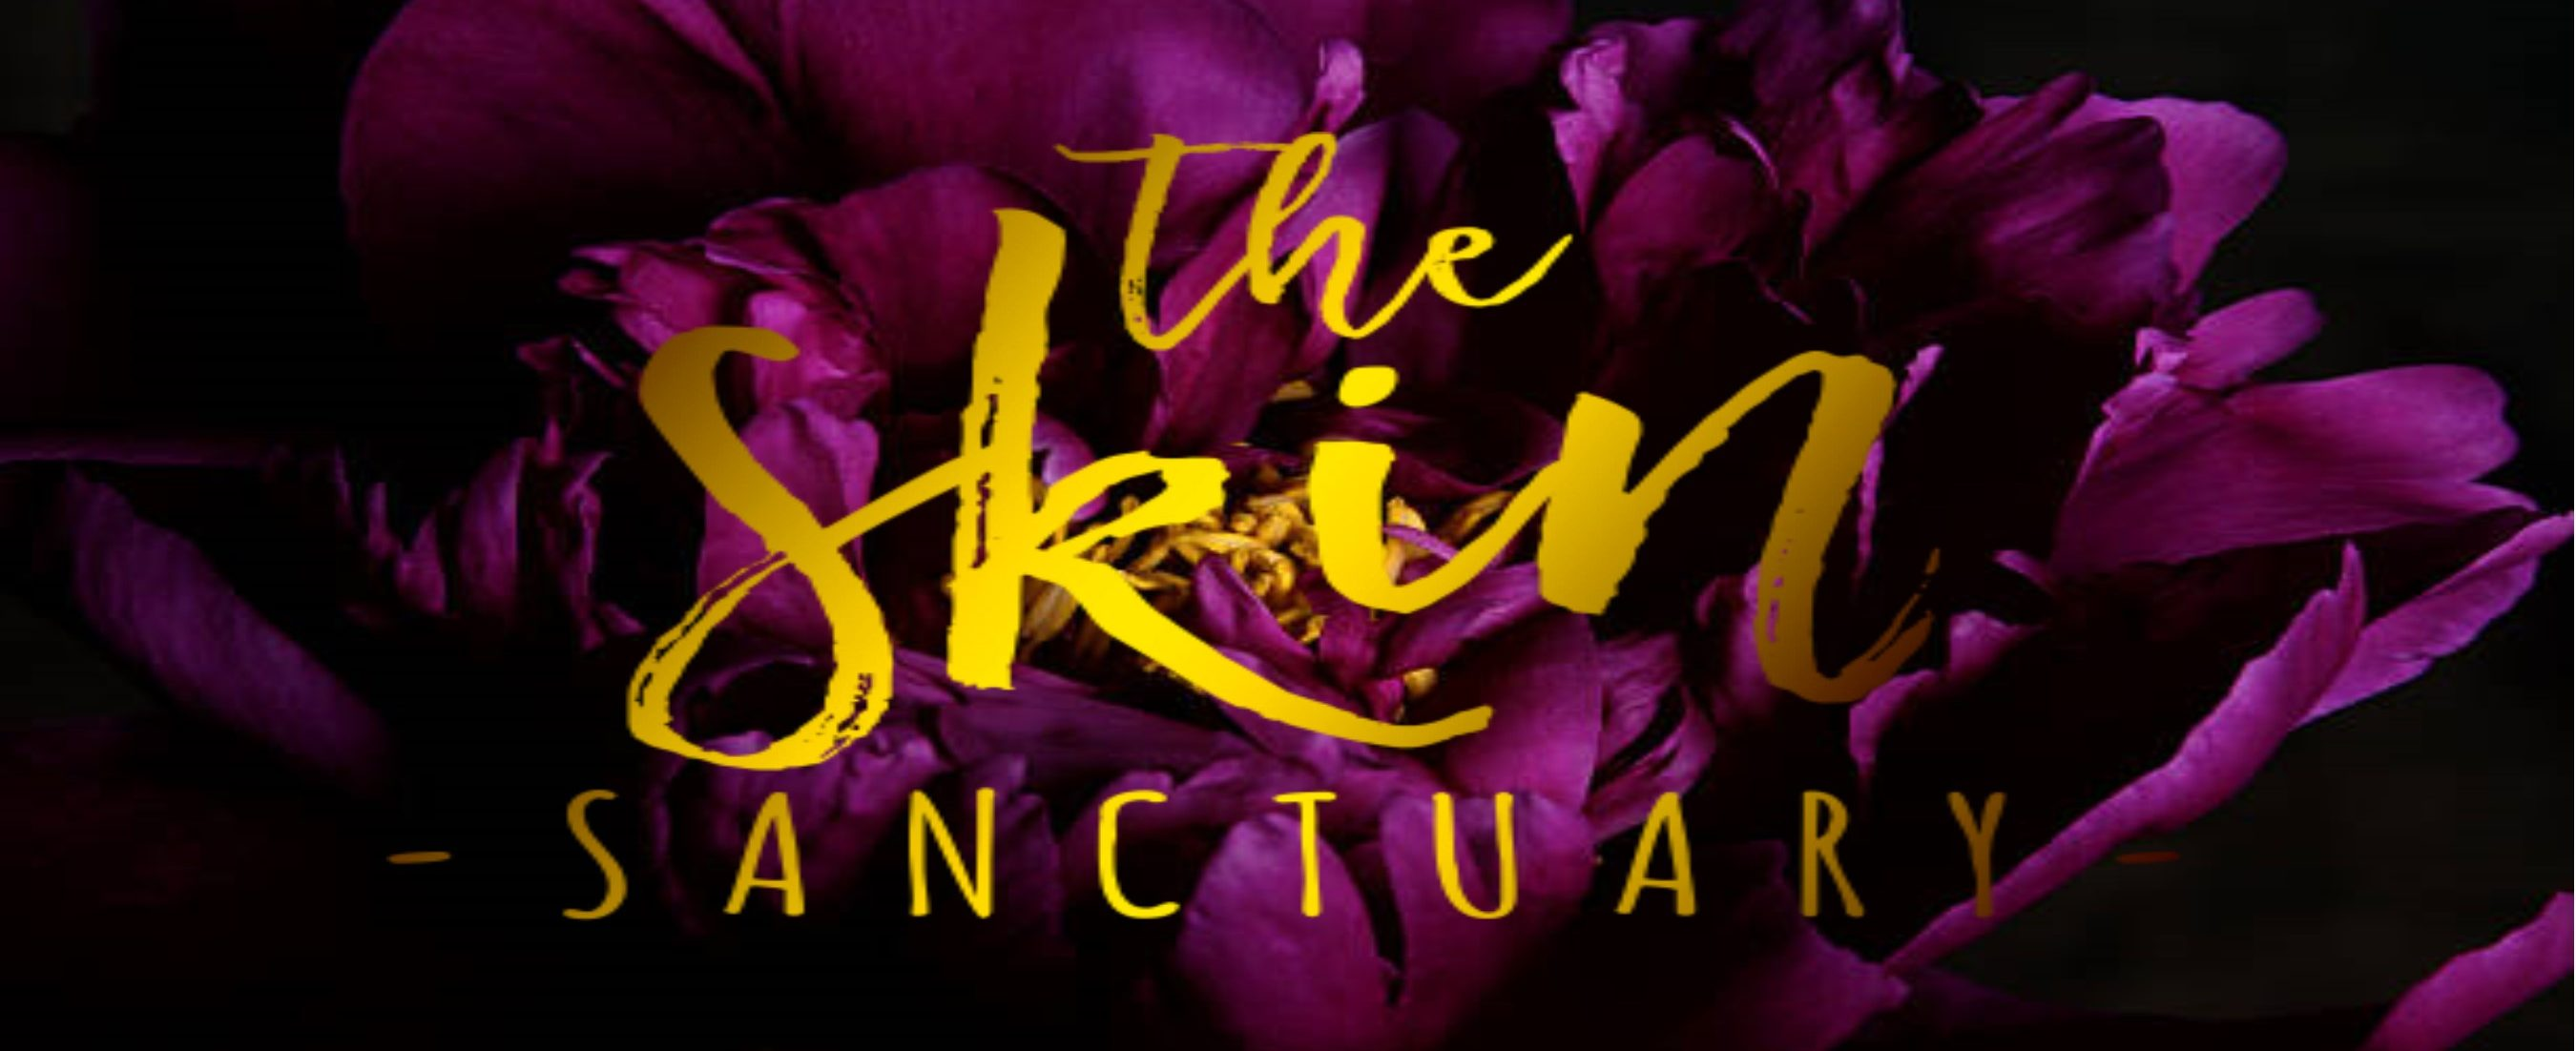 The Skin Sanctuary LLC.